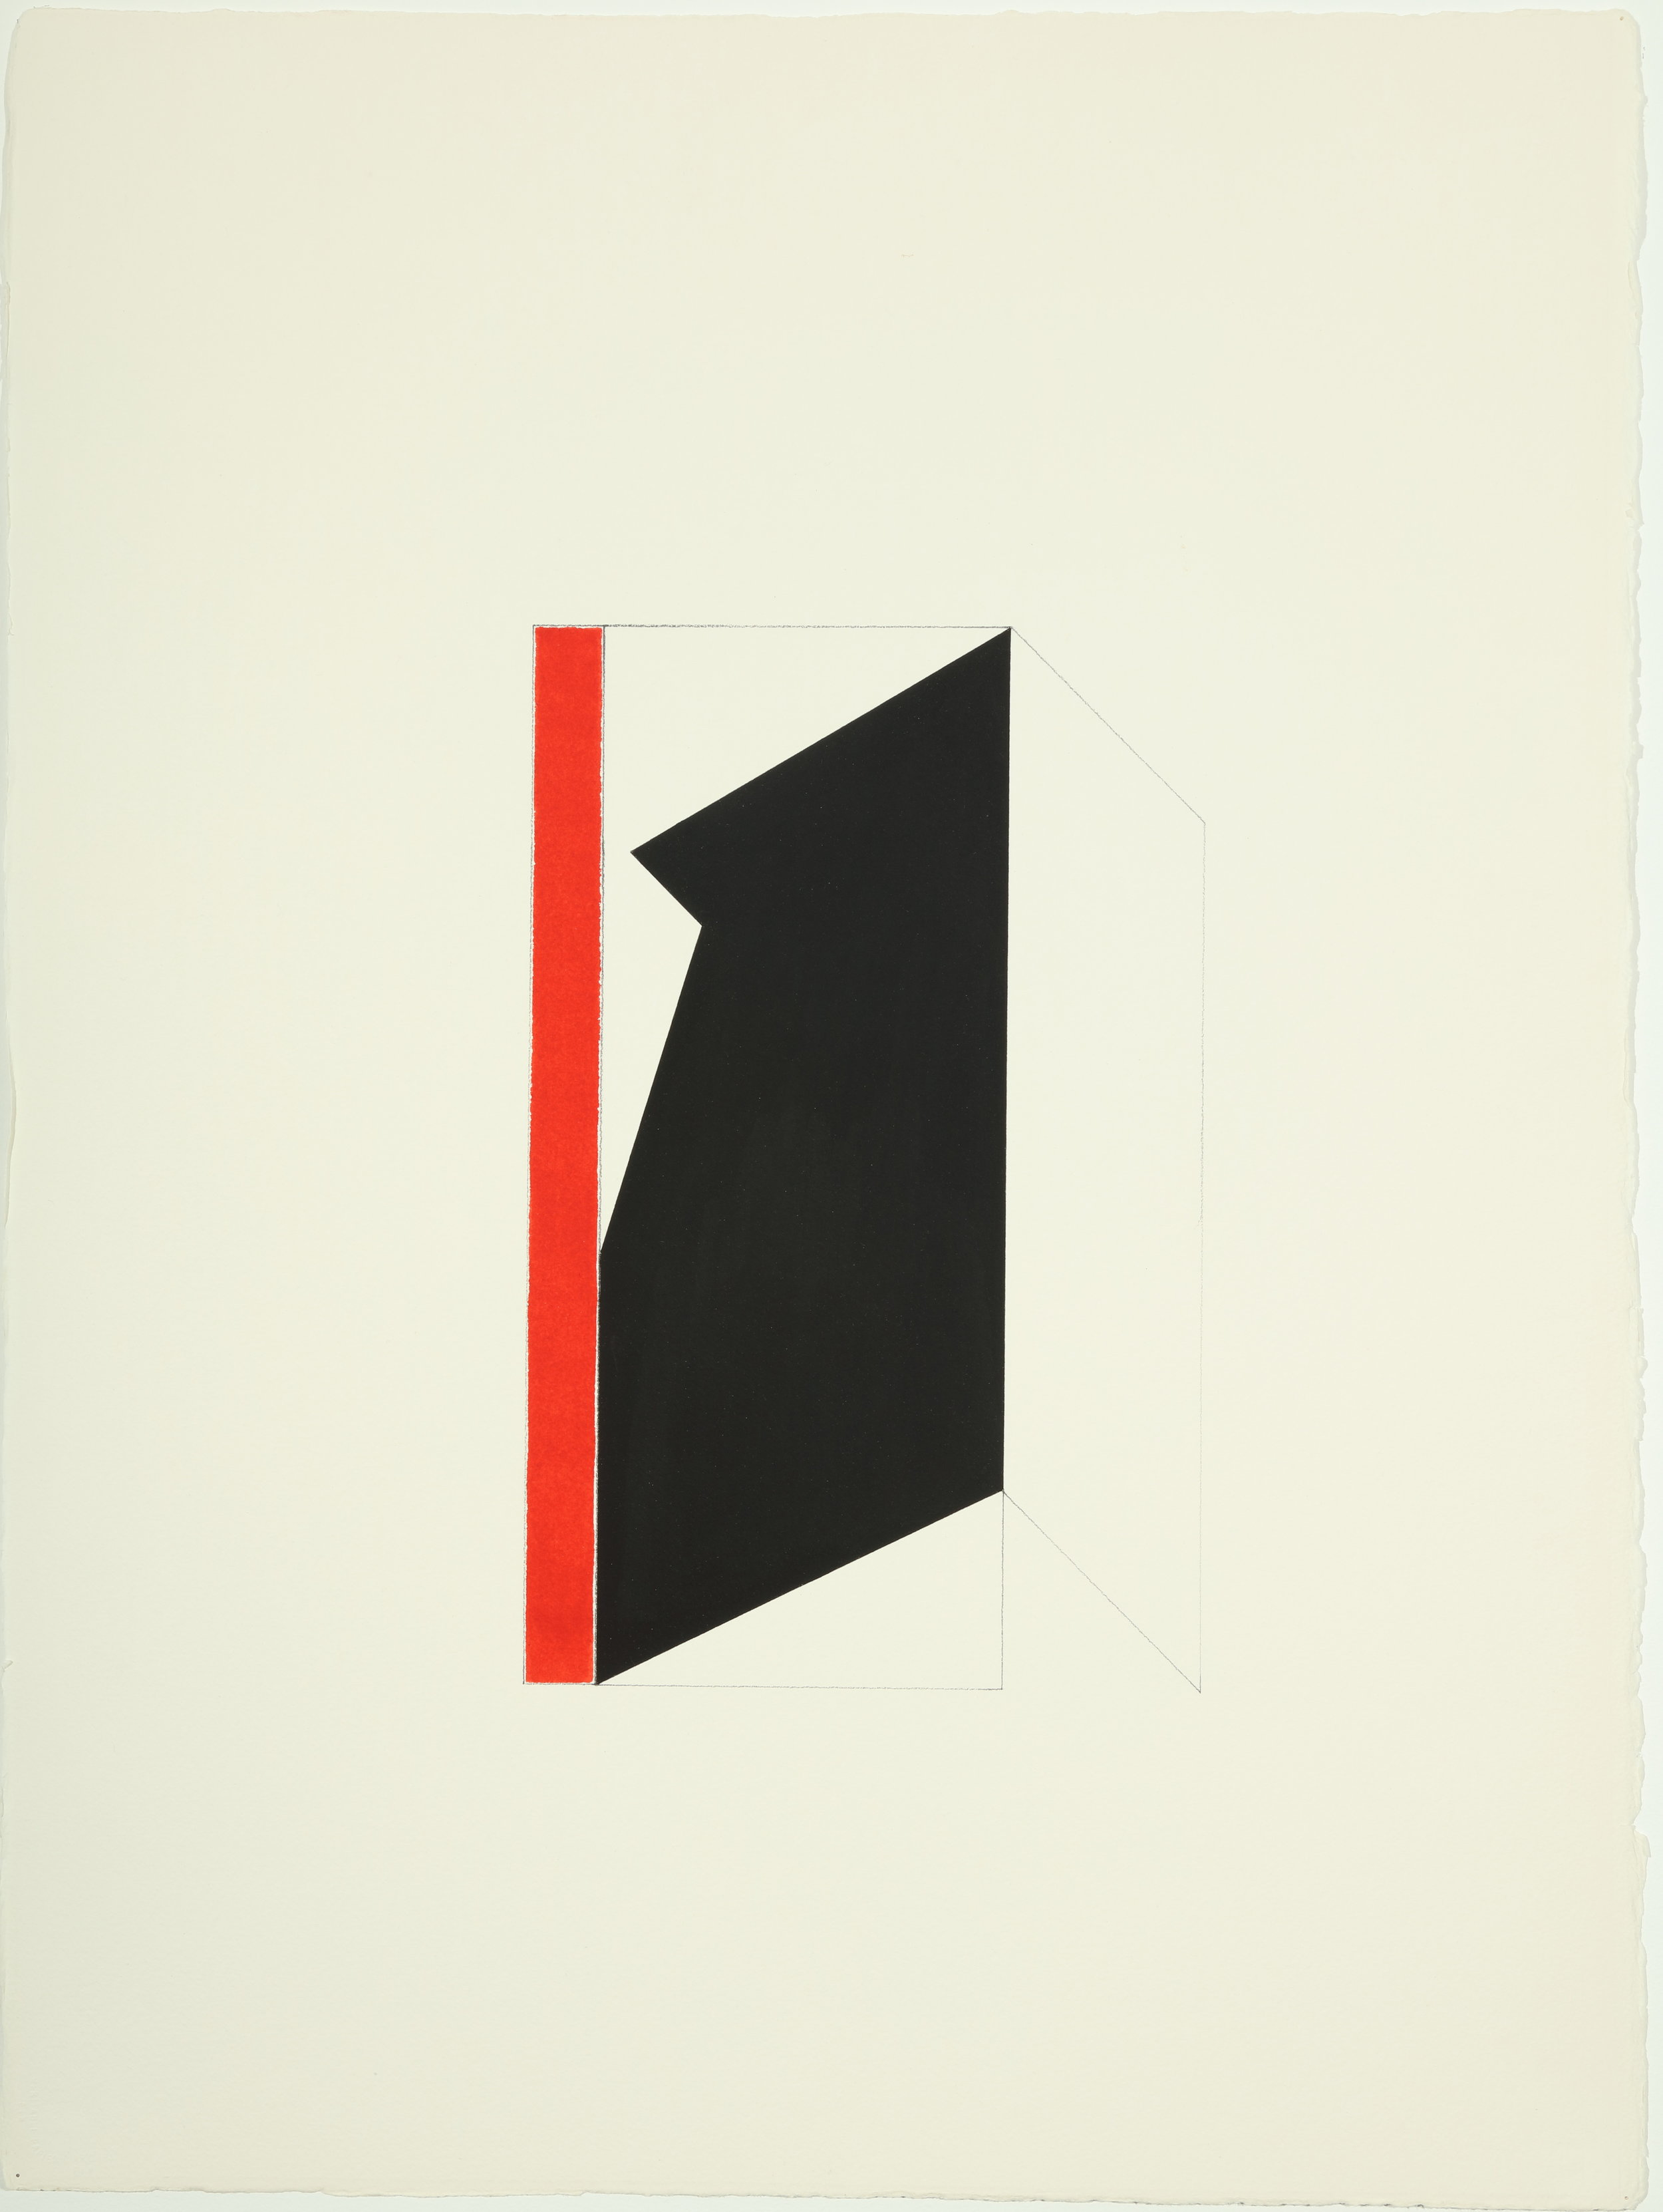 Untitled , 1977-1978 Acrylic and pencil on paper 30.50H x 22.87W Inches